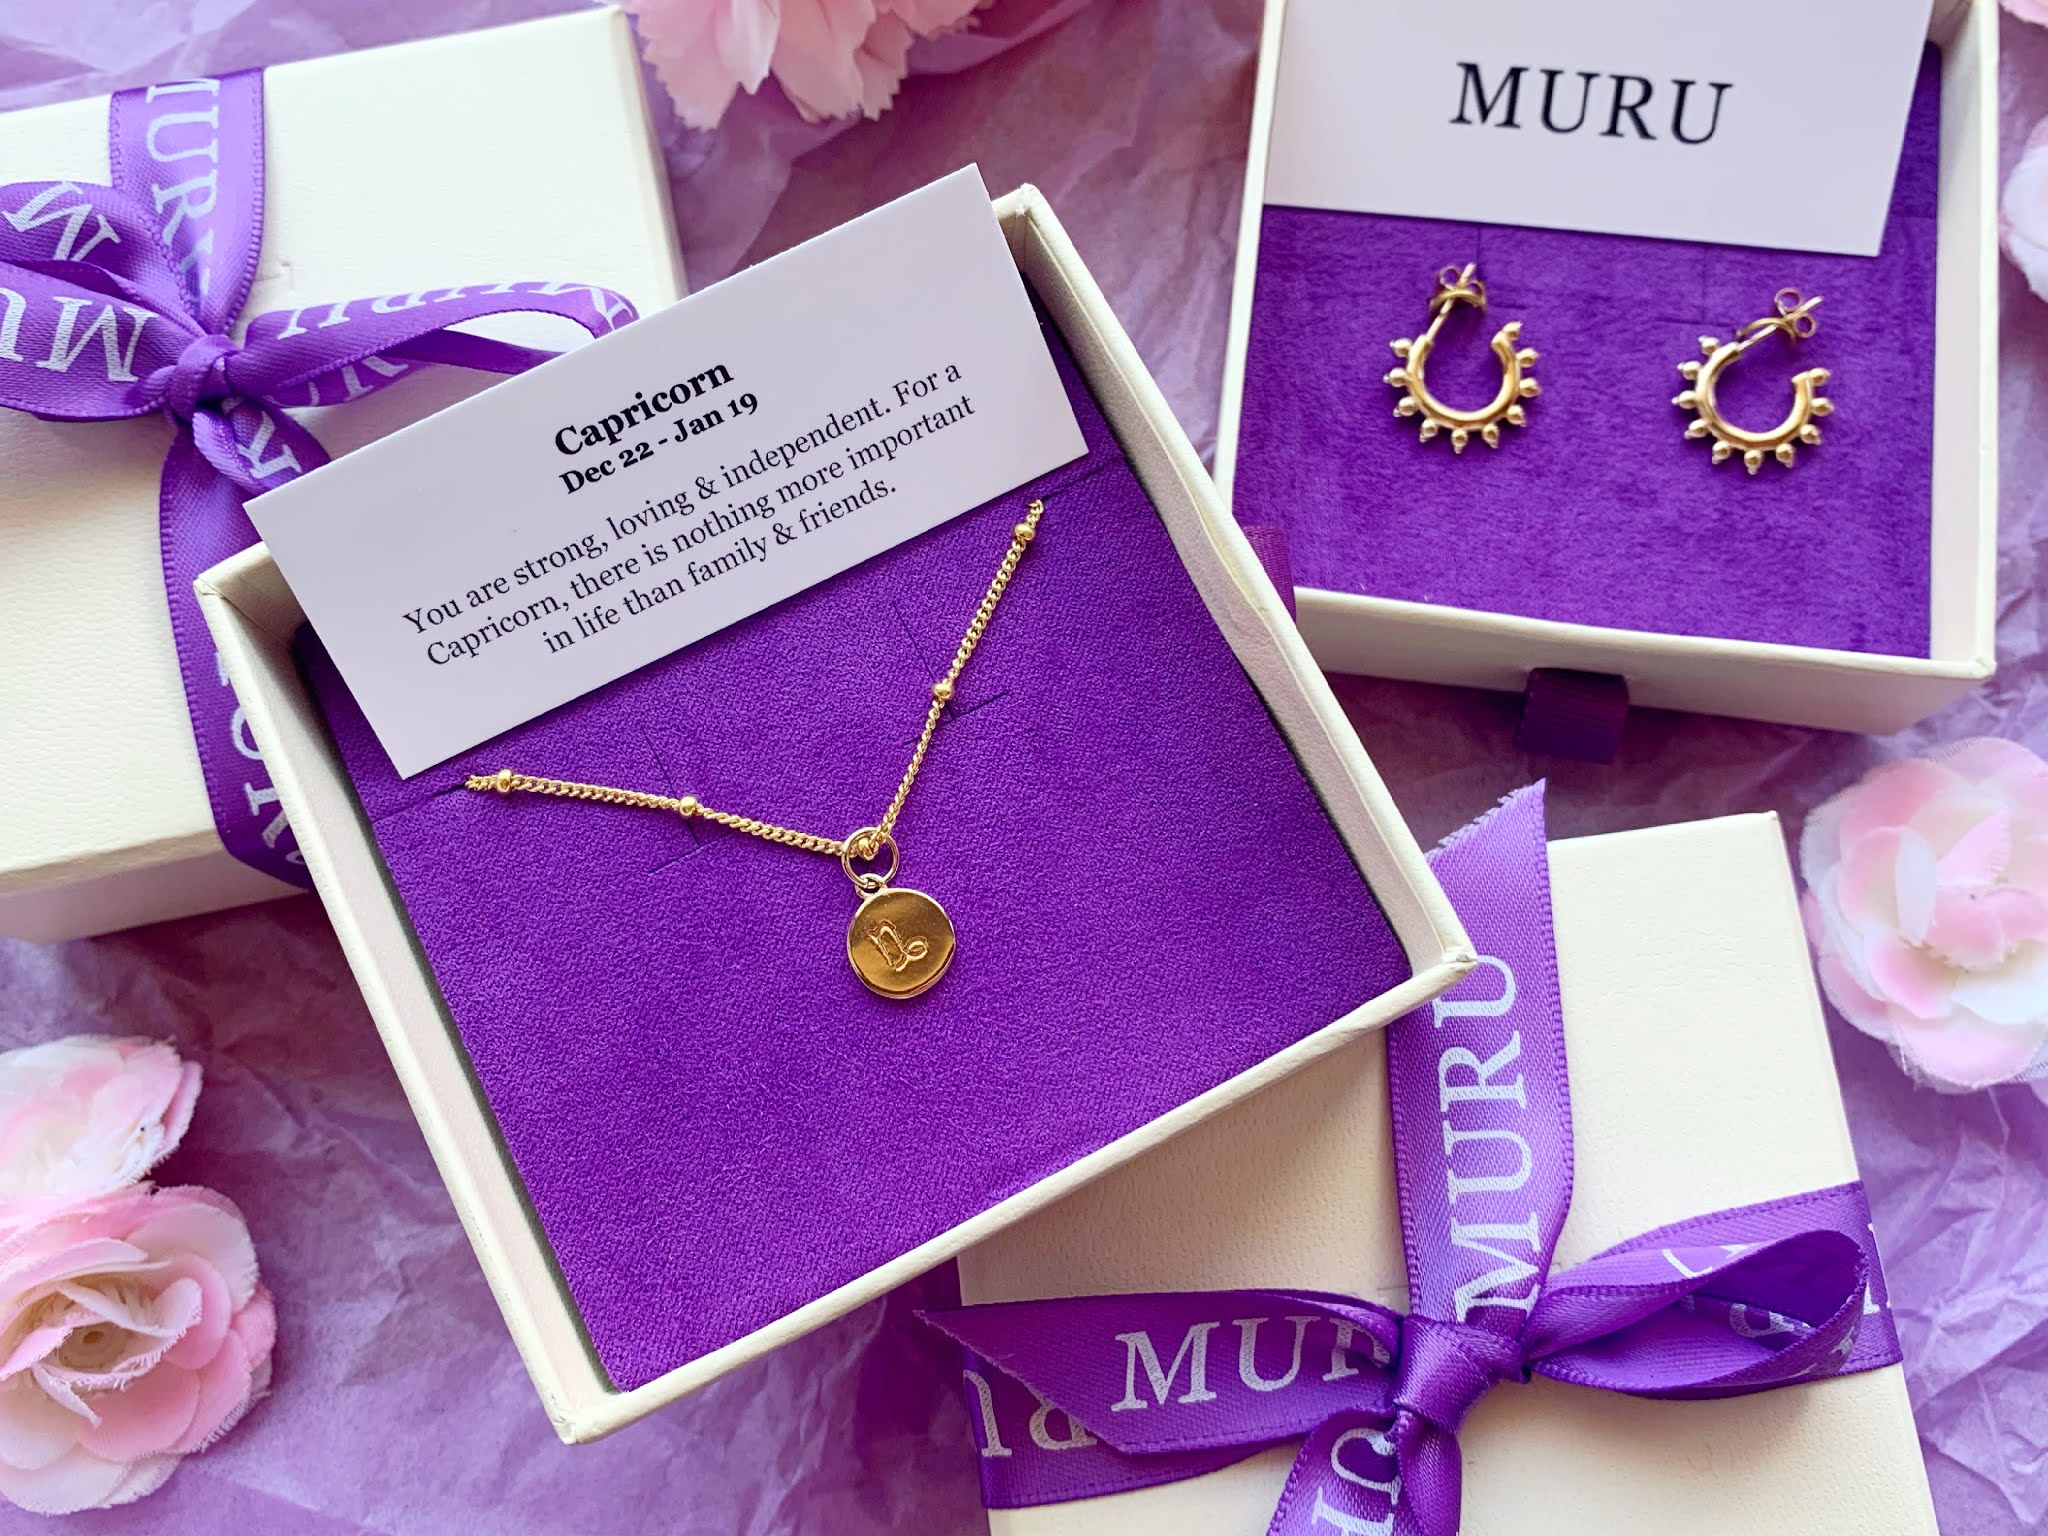 Muru Jewellery Bracelet and Earrings in their gift wrapping